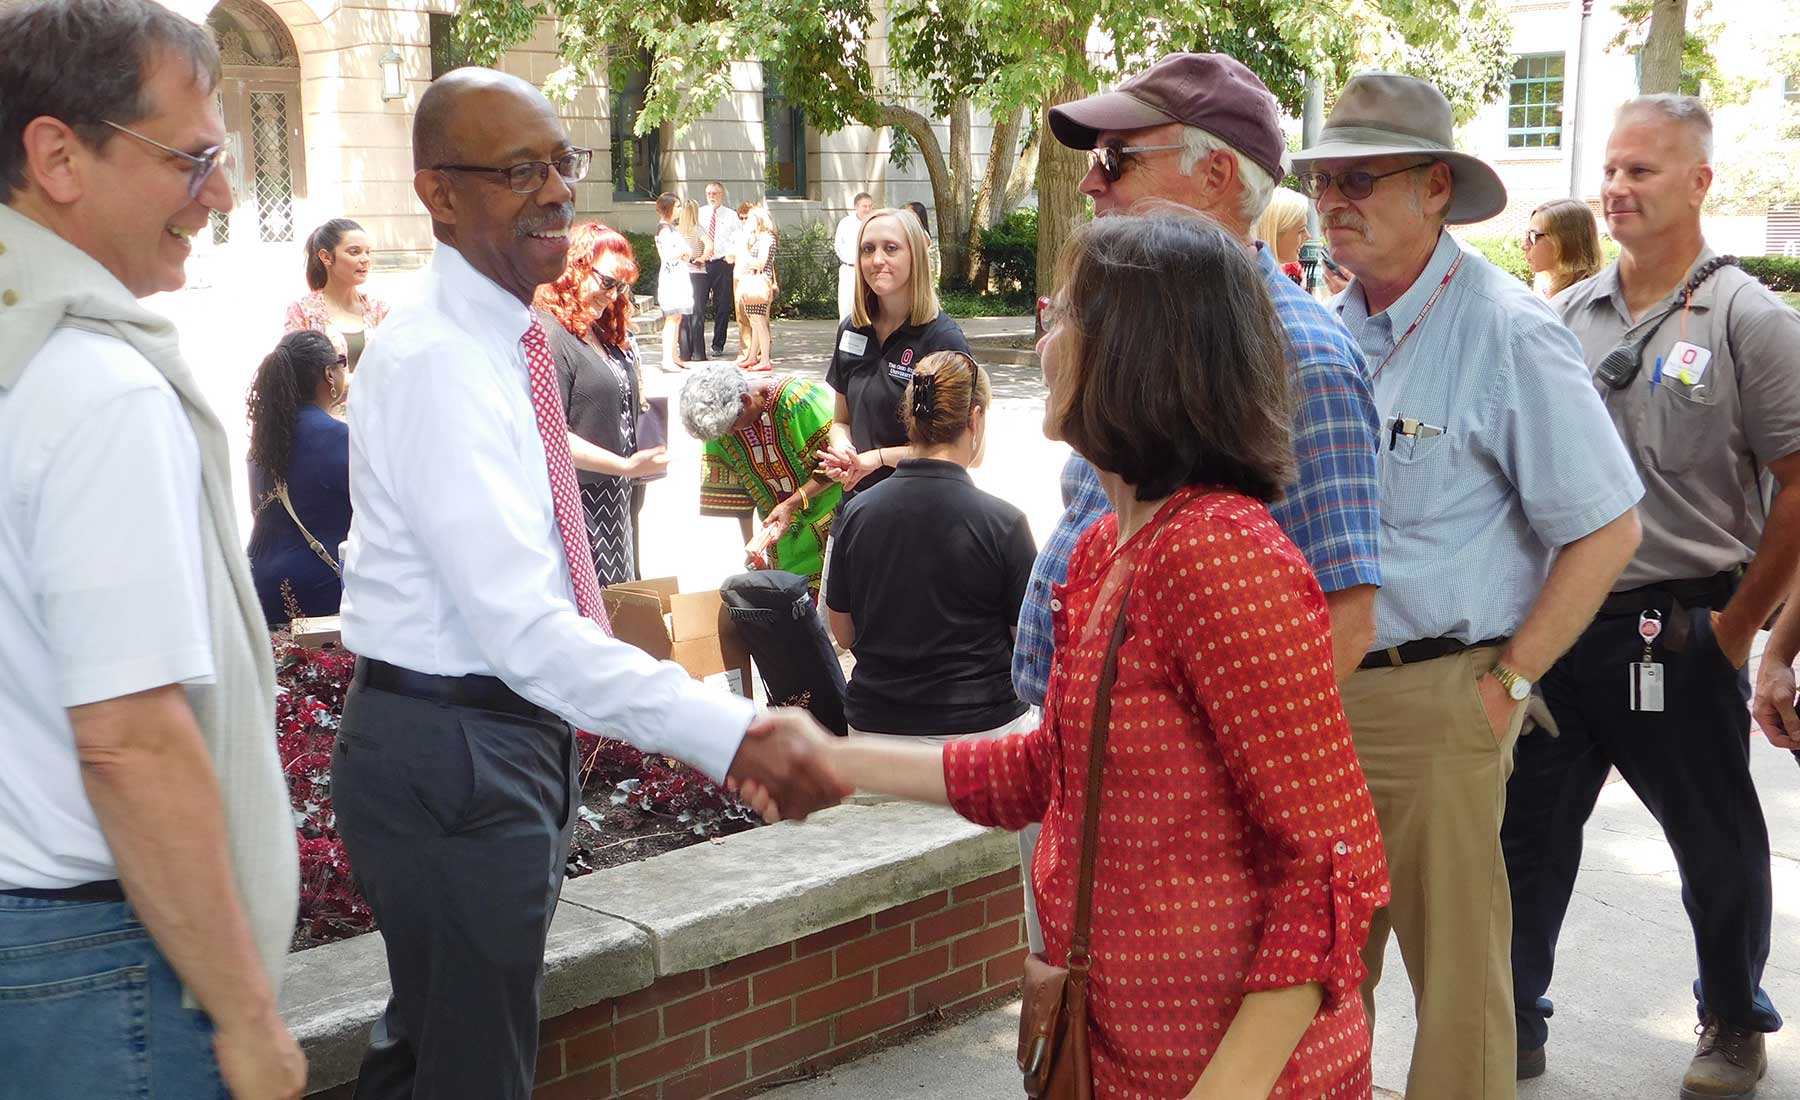 Dr. Drake greets staff members at the ice cream social in 2016